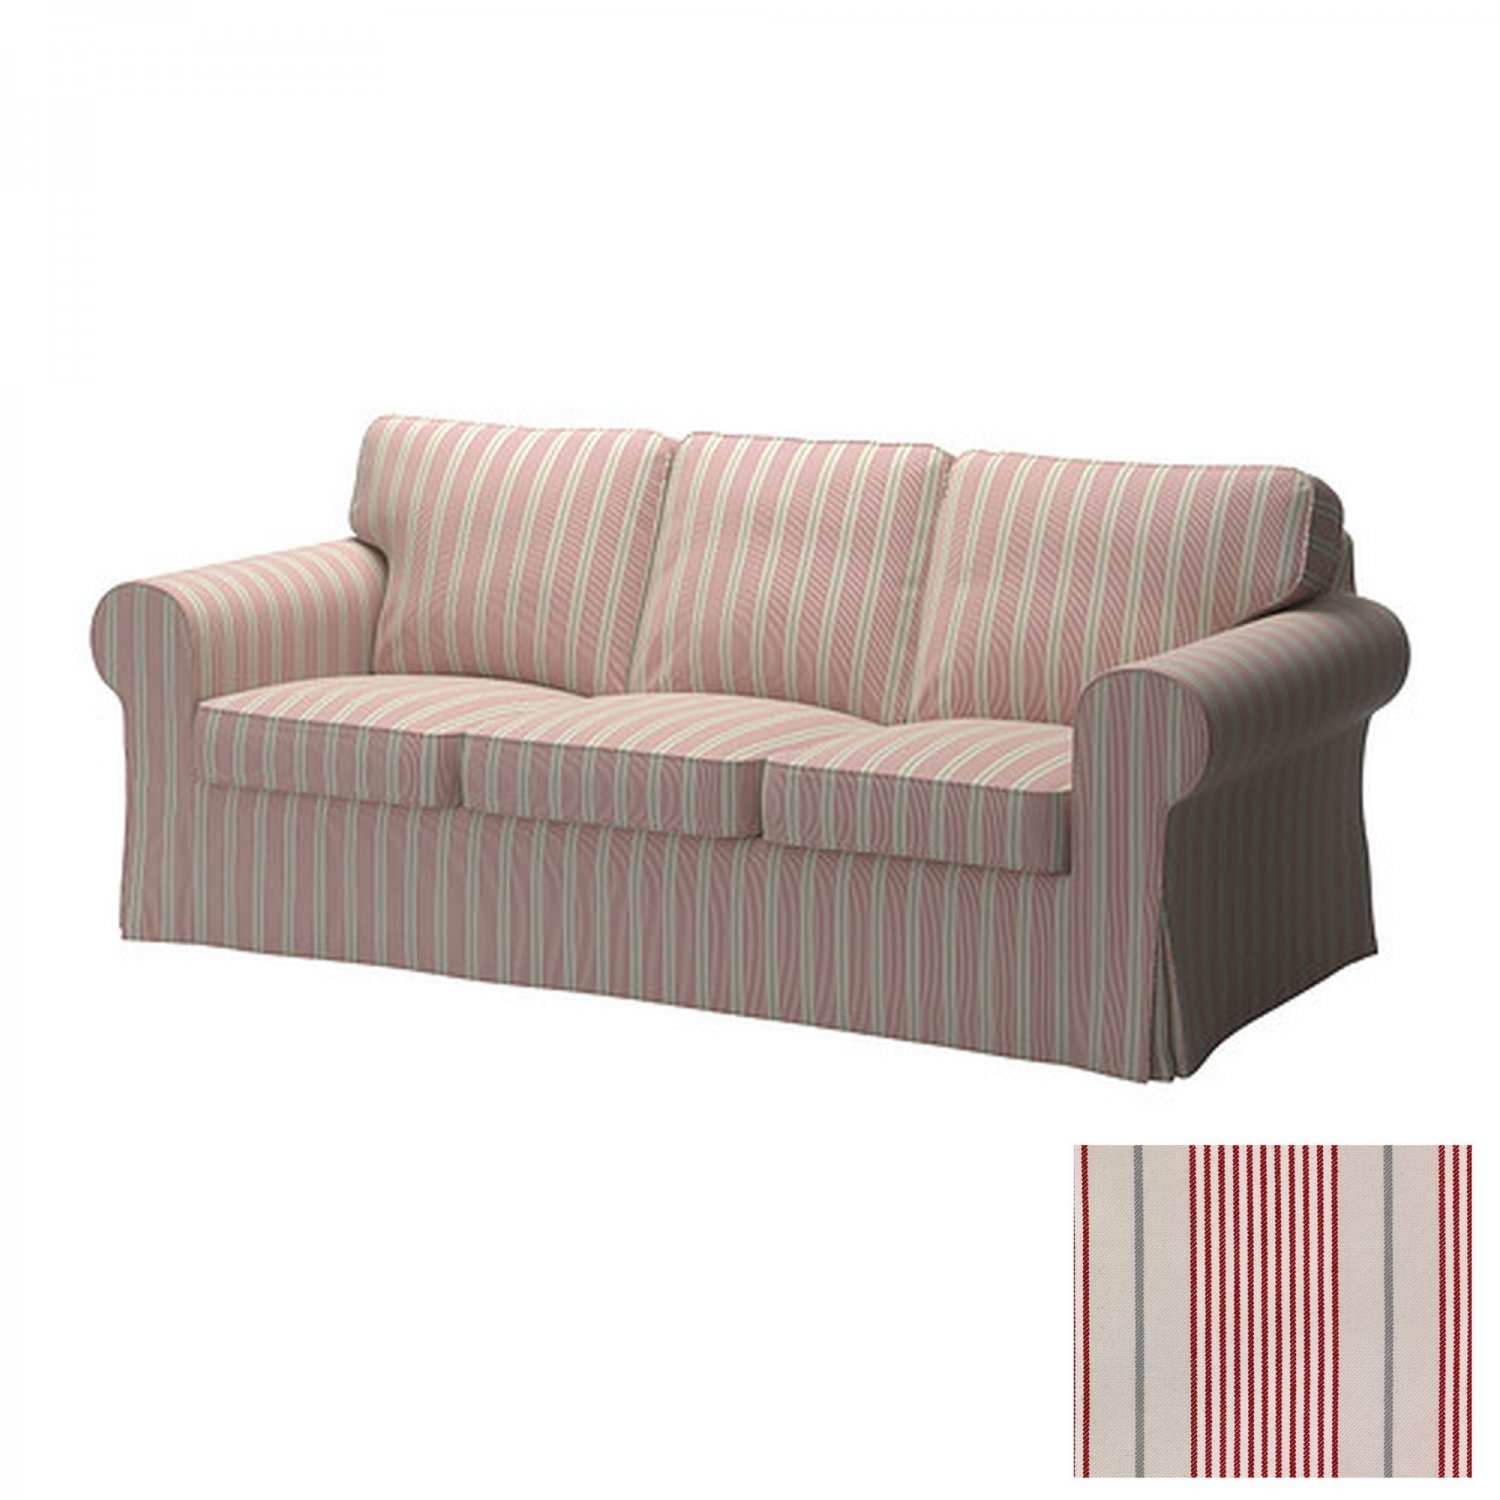 Ektorp Slipcovers Ikea Ektorp 3 Seat Sofa Slipcover Cover Mobacka Ticking Stripes Red Beige